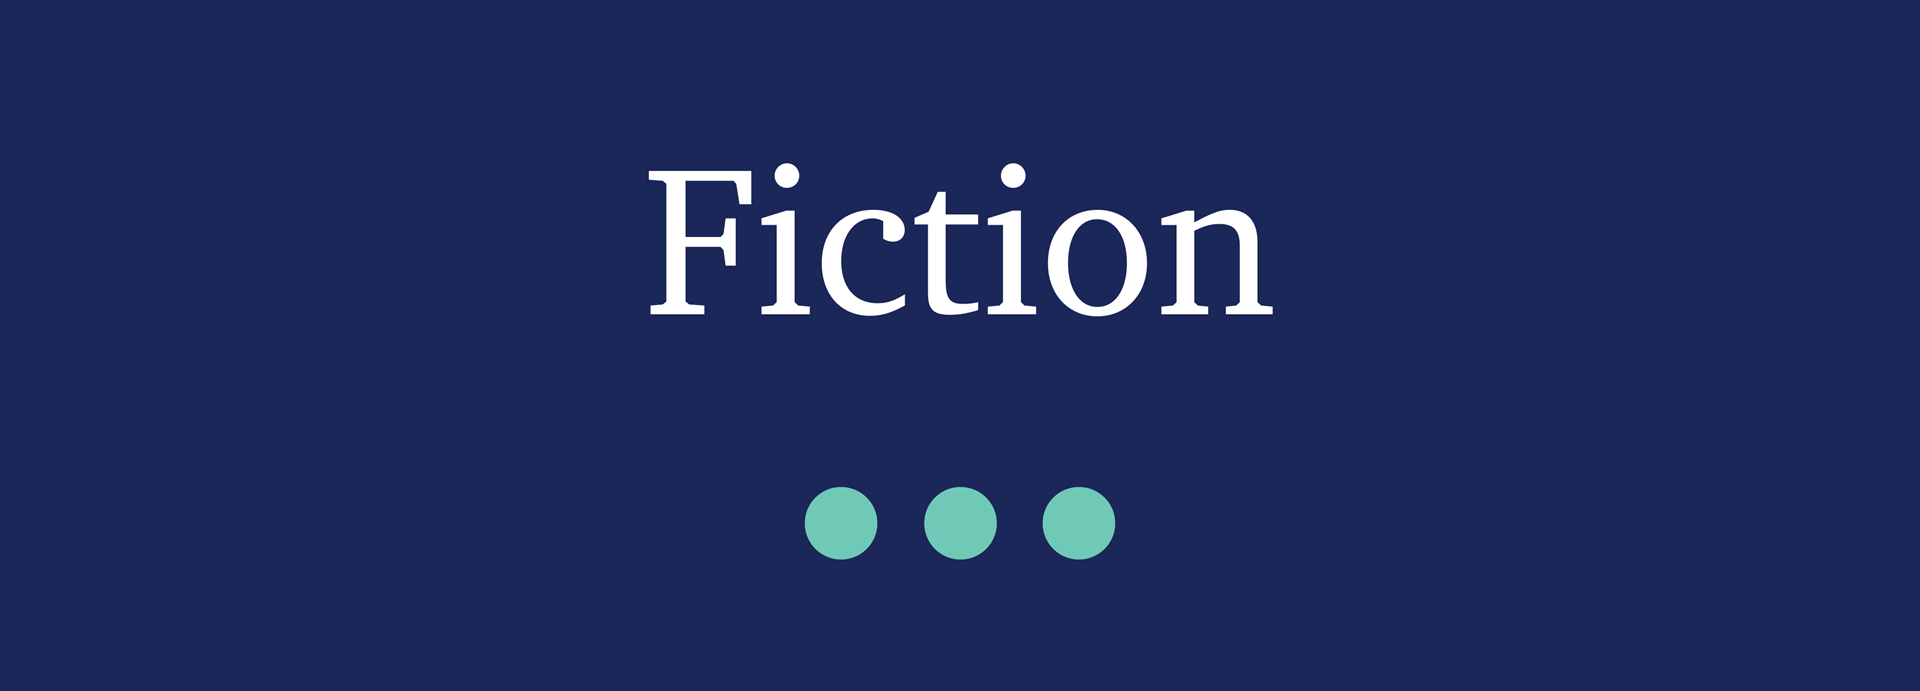 Picture for category Fiction